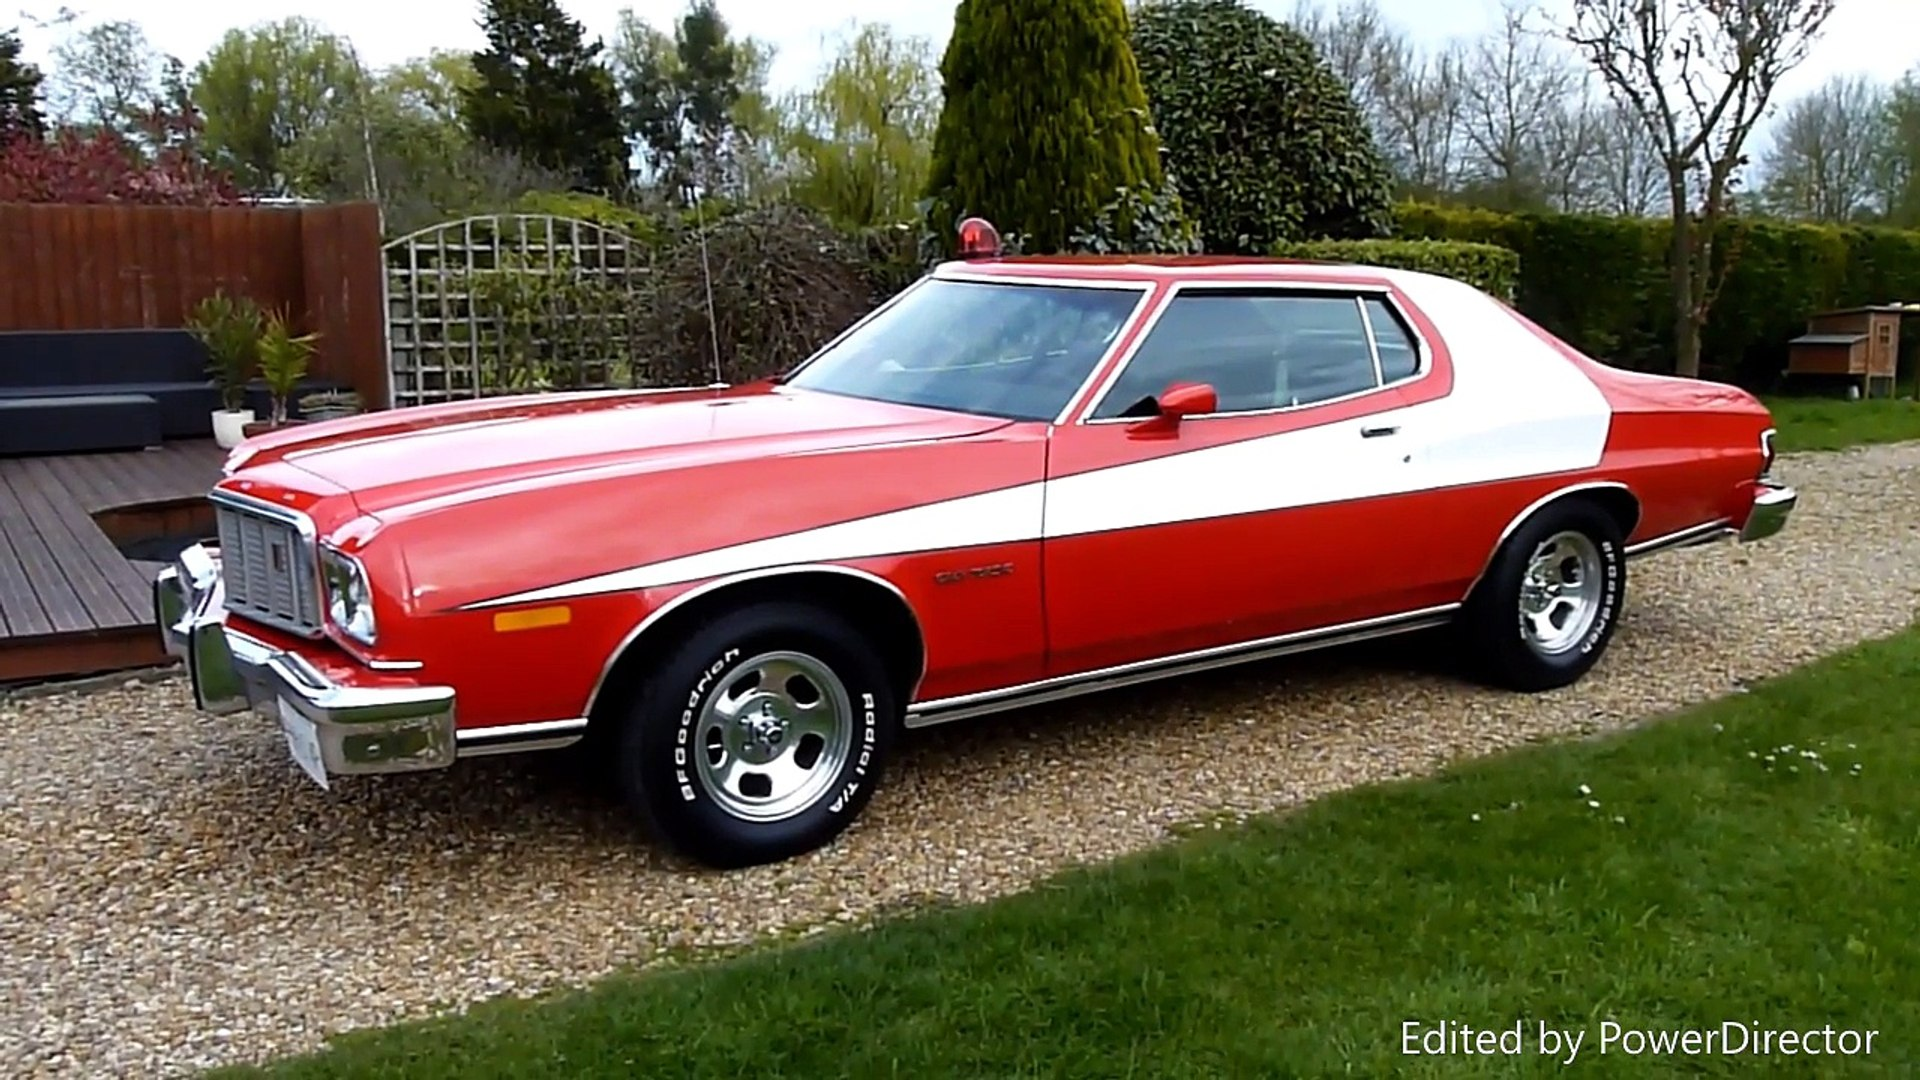 Video Review Of 1976 Ford Gran Torino Starsky And Hutch For Sale Sdsc Specialist Cars Cambridge Video Dailymotion